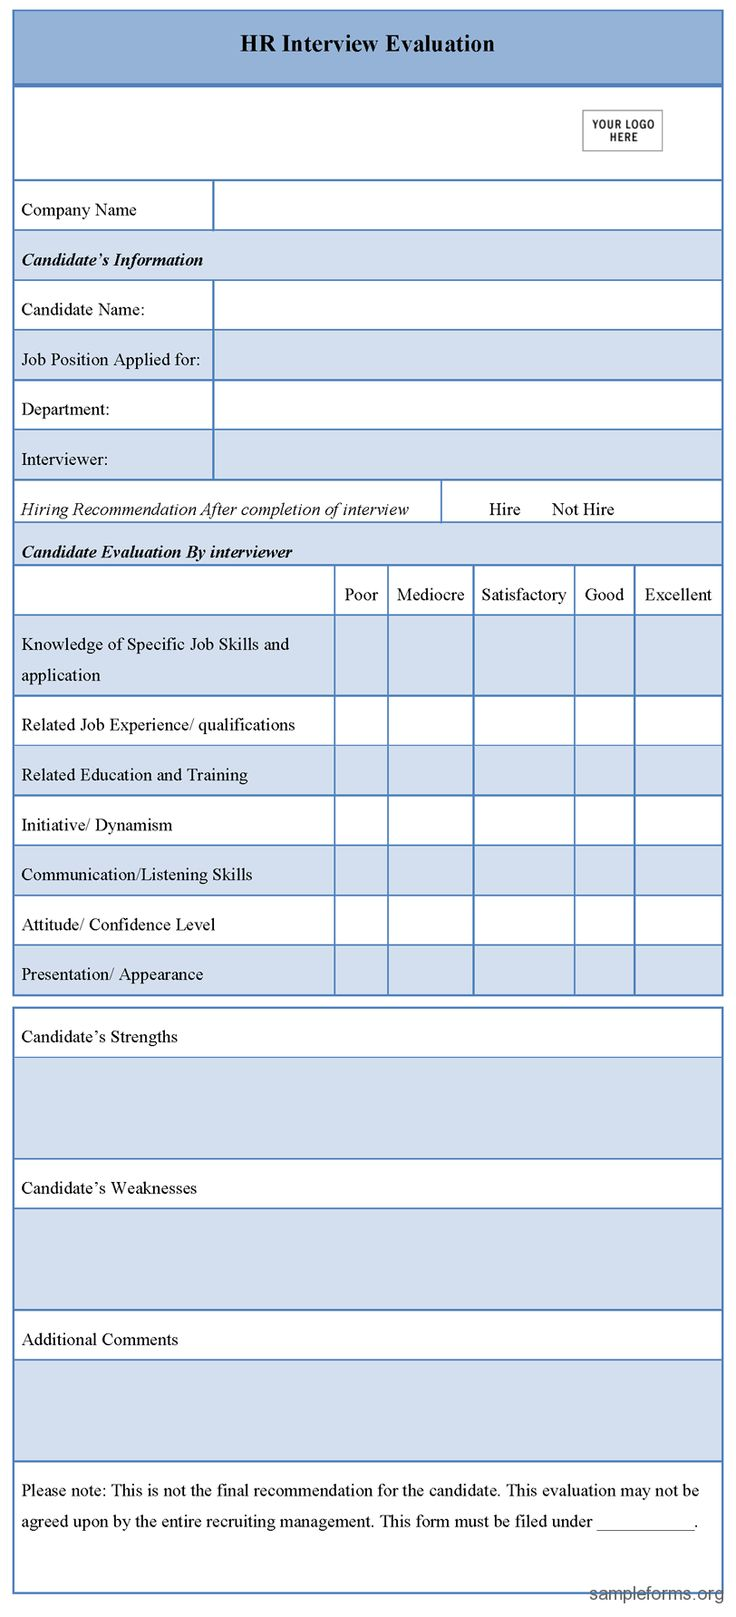 17 Best images about forms – Candidate Evaluation Form